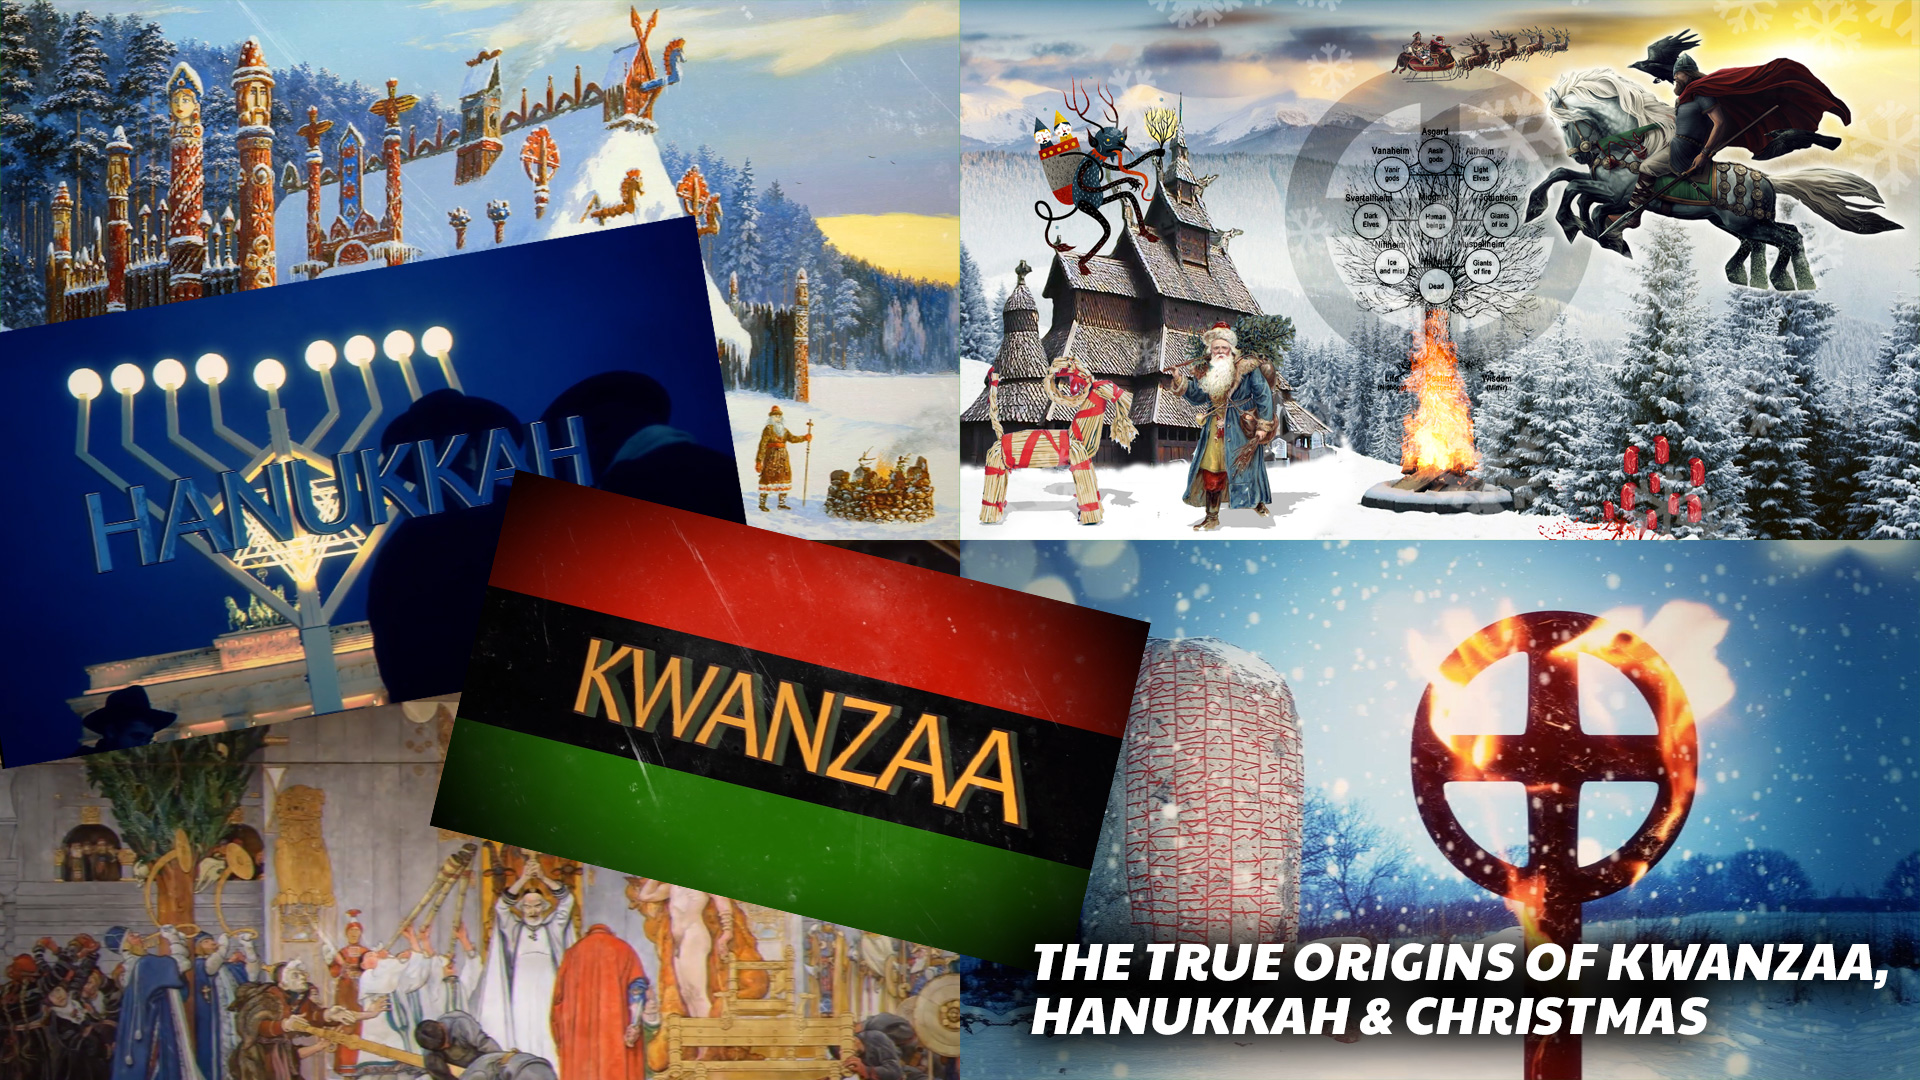 The True Origins of Kwanzaa, Hanukkah & Christmas (The Story Behind The Yule Celebration)